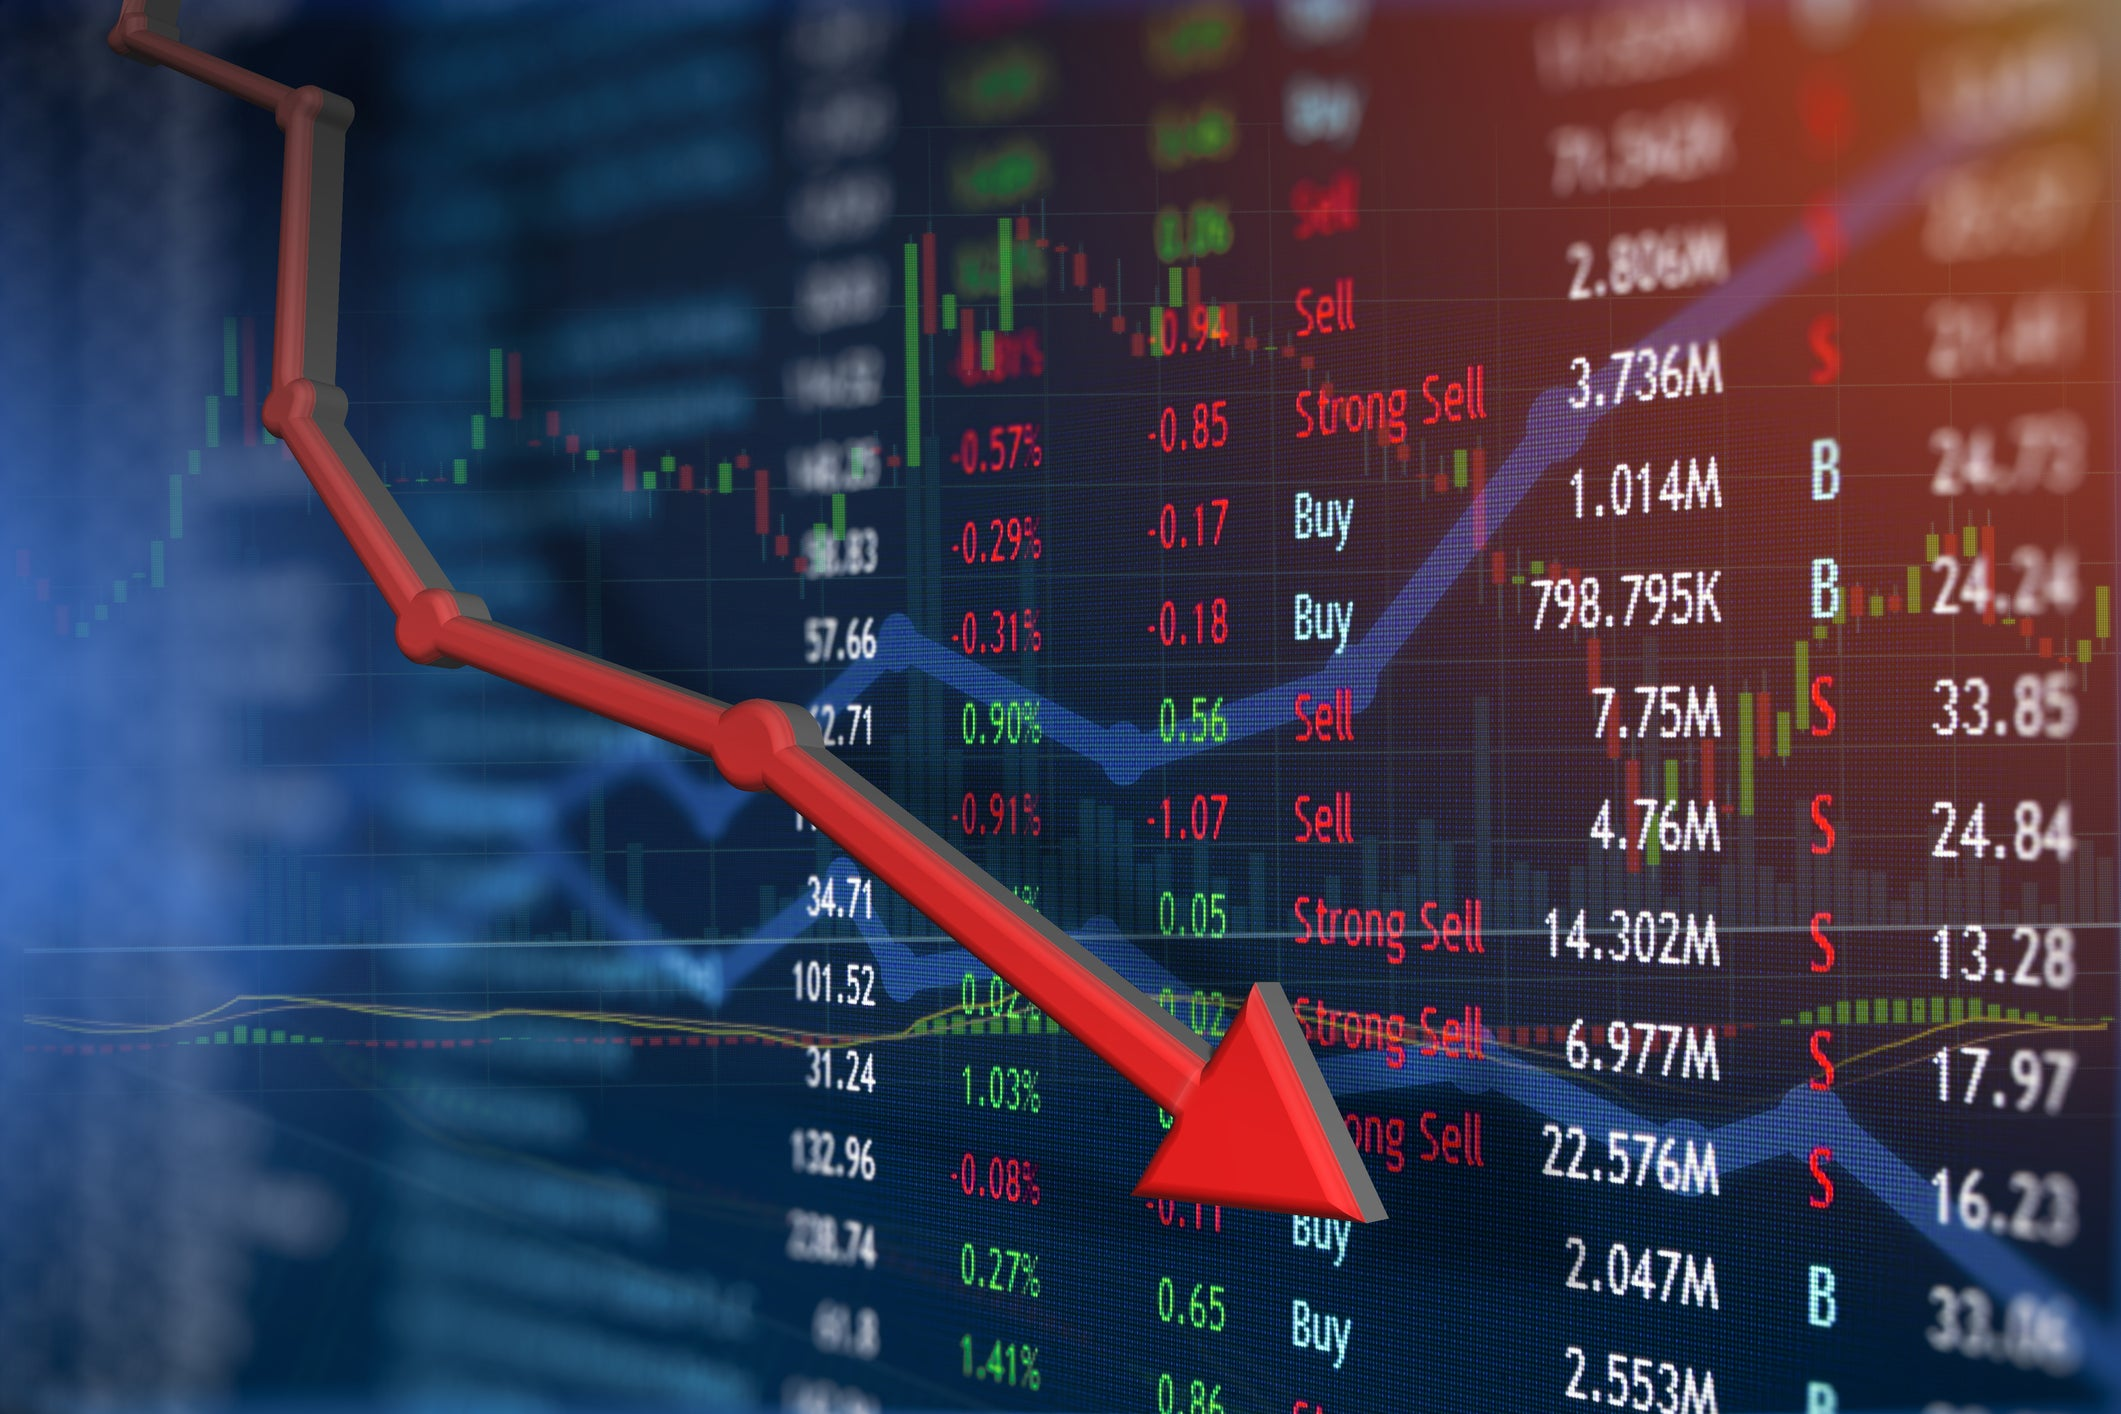 Stock market data with a red arrow indicating losses.